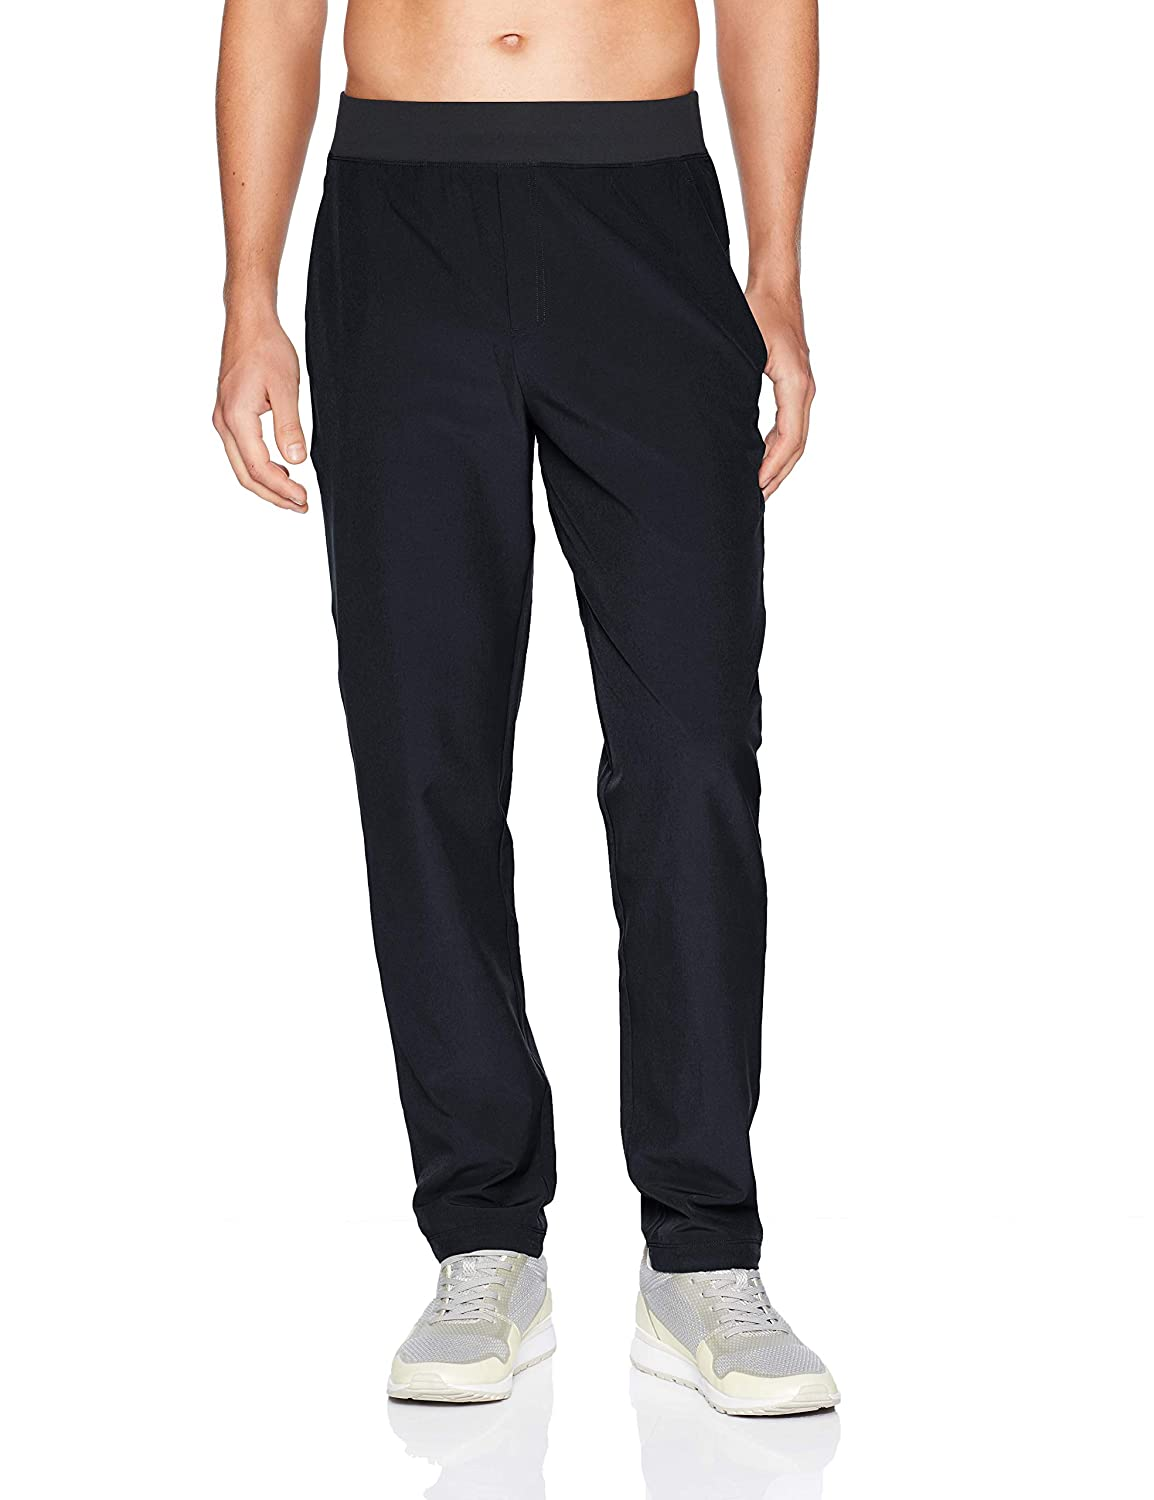 Peak Velocity Men's All Day Comfort Stretch Woven Athletic-Fit Pant MA28B07